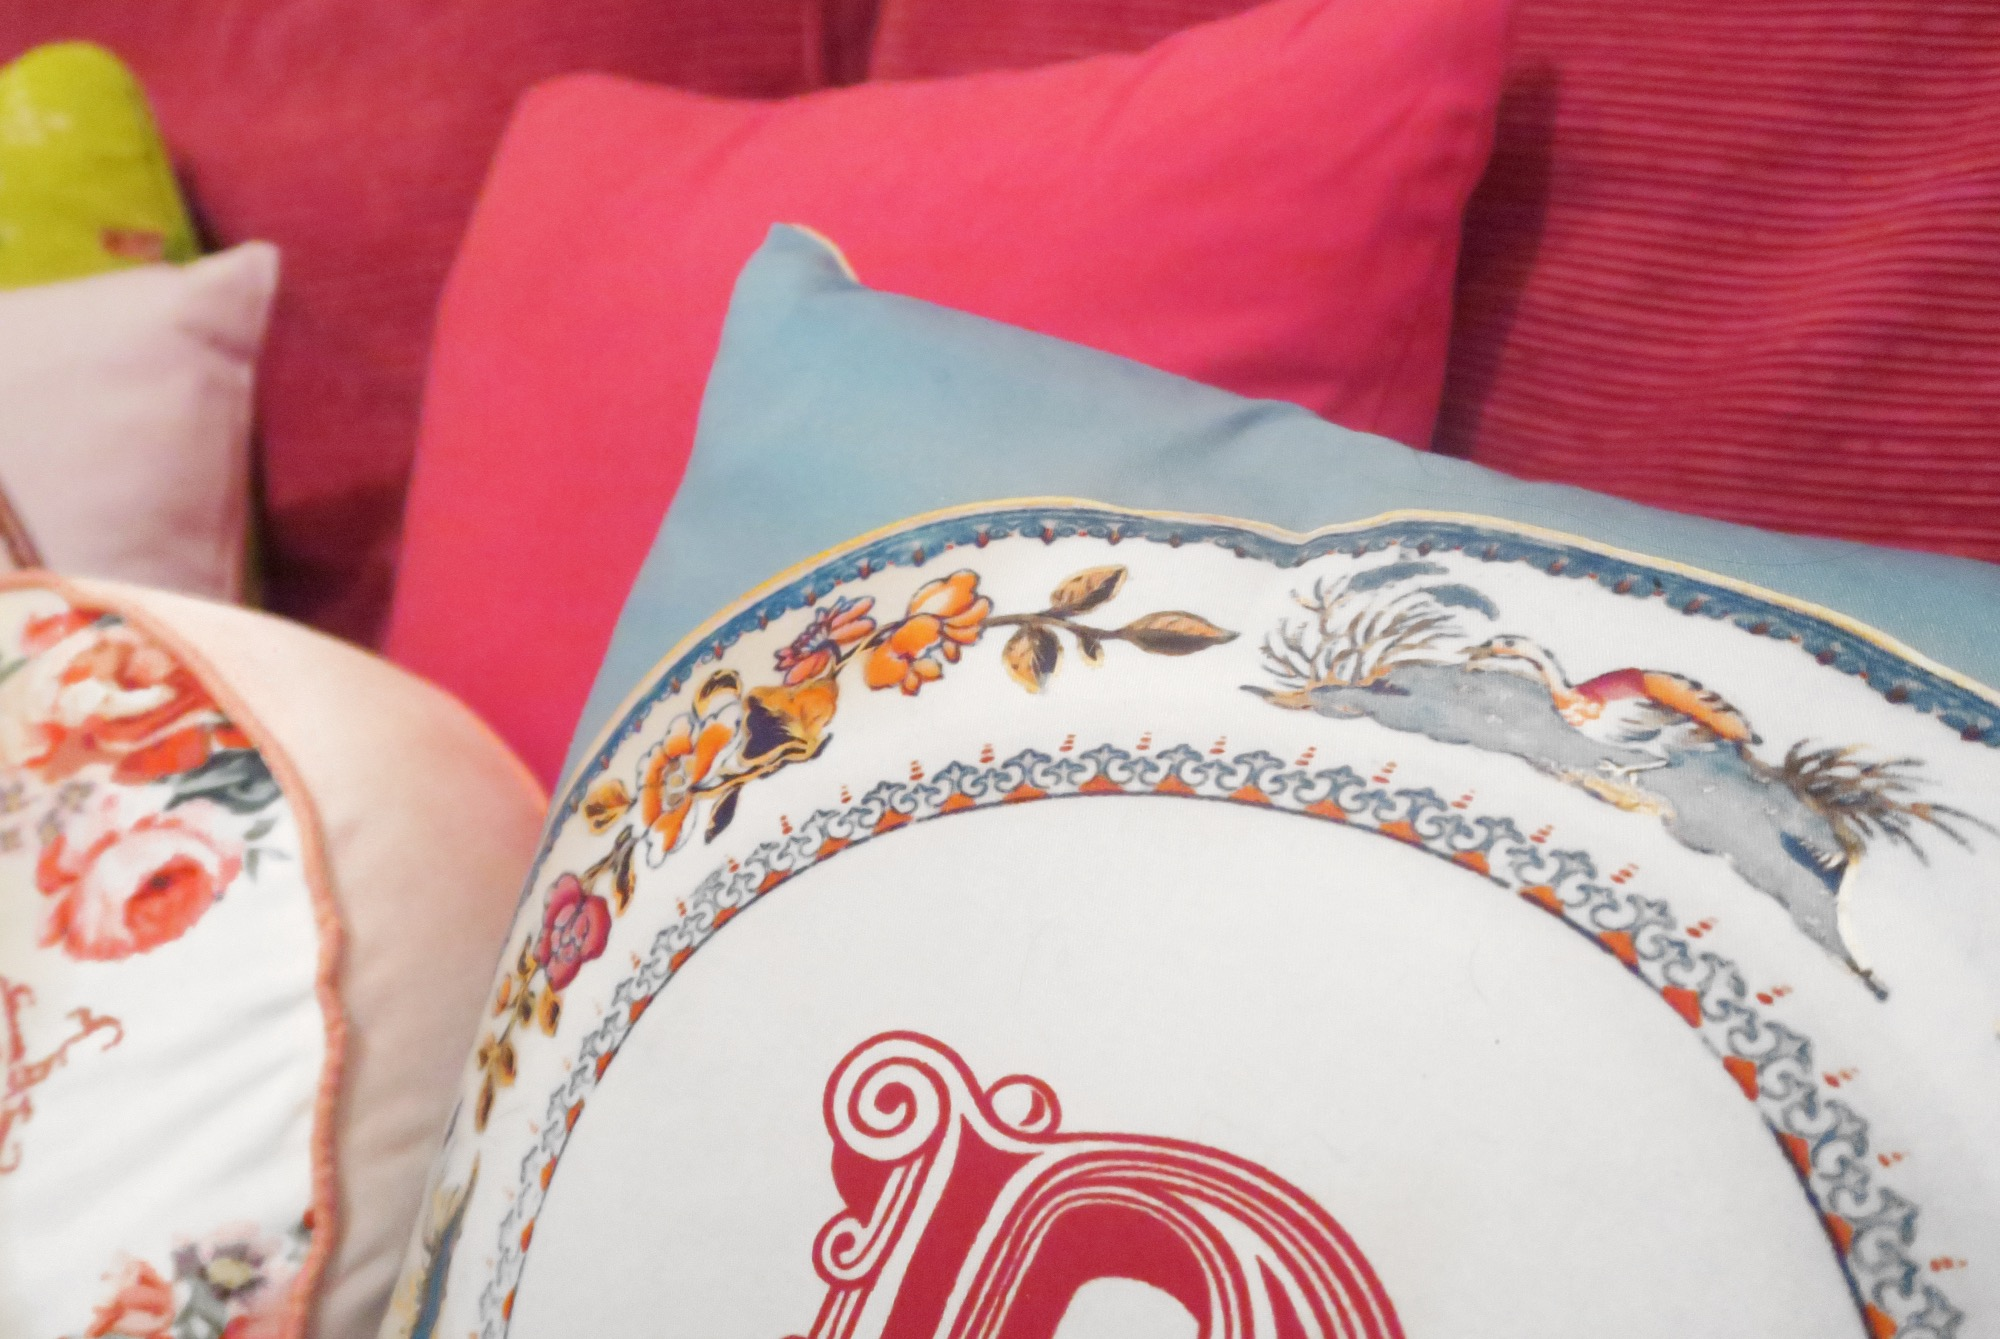 taxiinbelgrade.ga provides affordable homeware, furniture and fashion for all the family. Use one of our George discount codes and you can save even more on your wardrobe and household update.